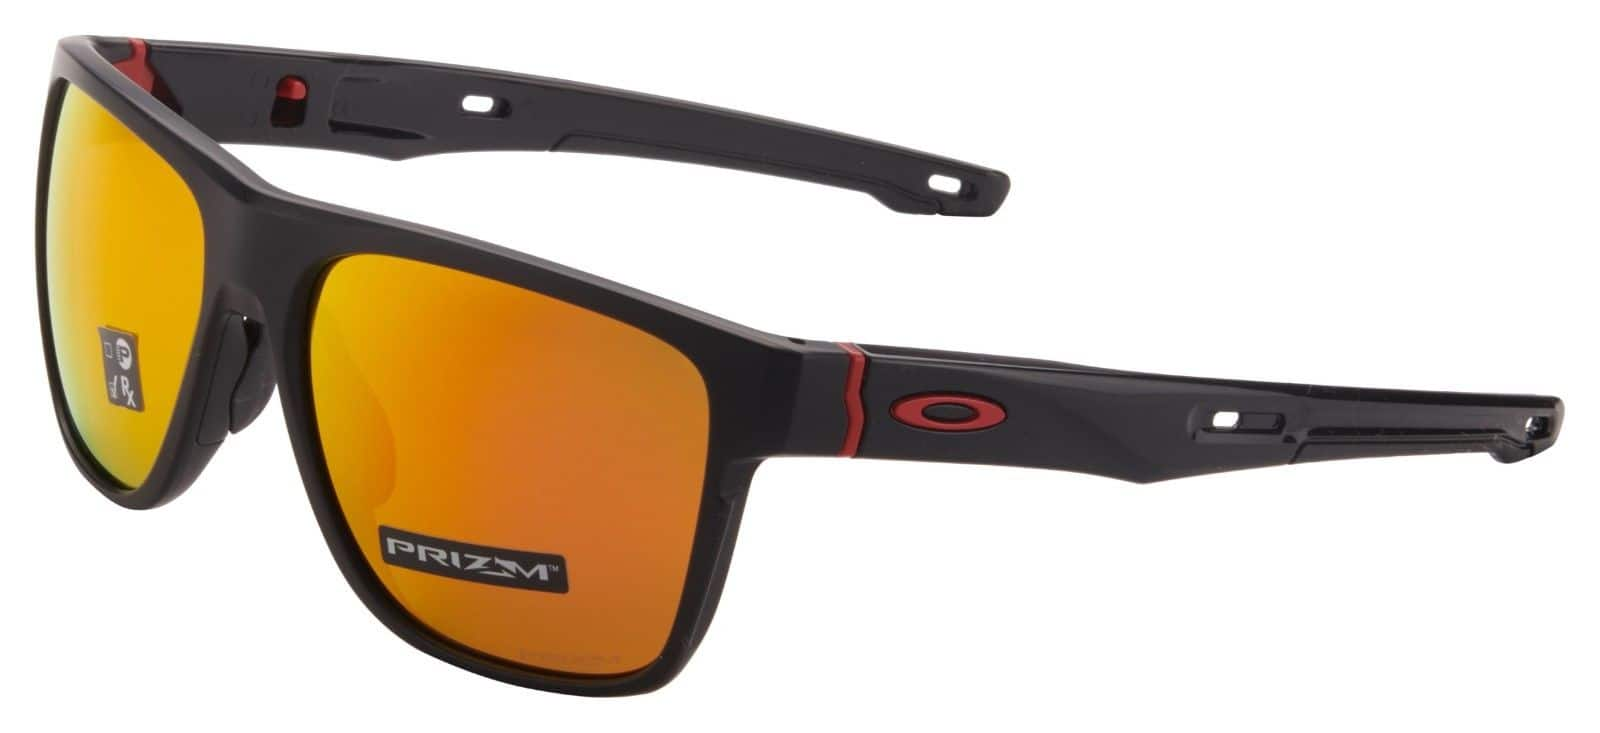 a57898e53f Oakley Crossrange Shield Sunglasses w  Matte Grey Smoke Frame ...